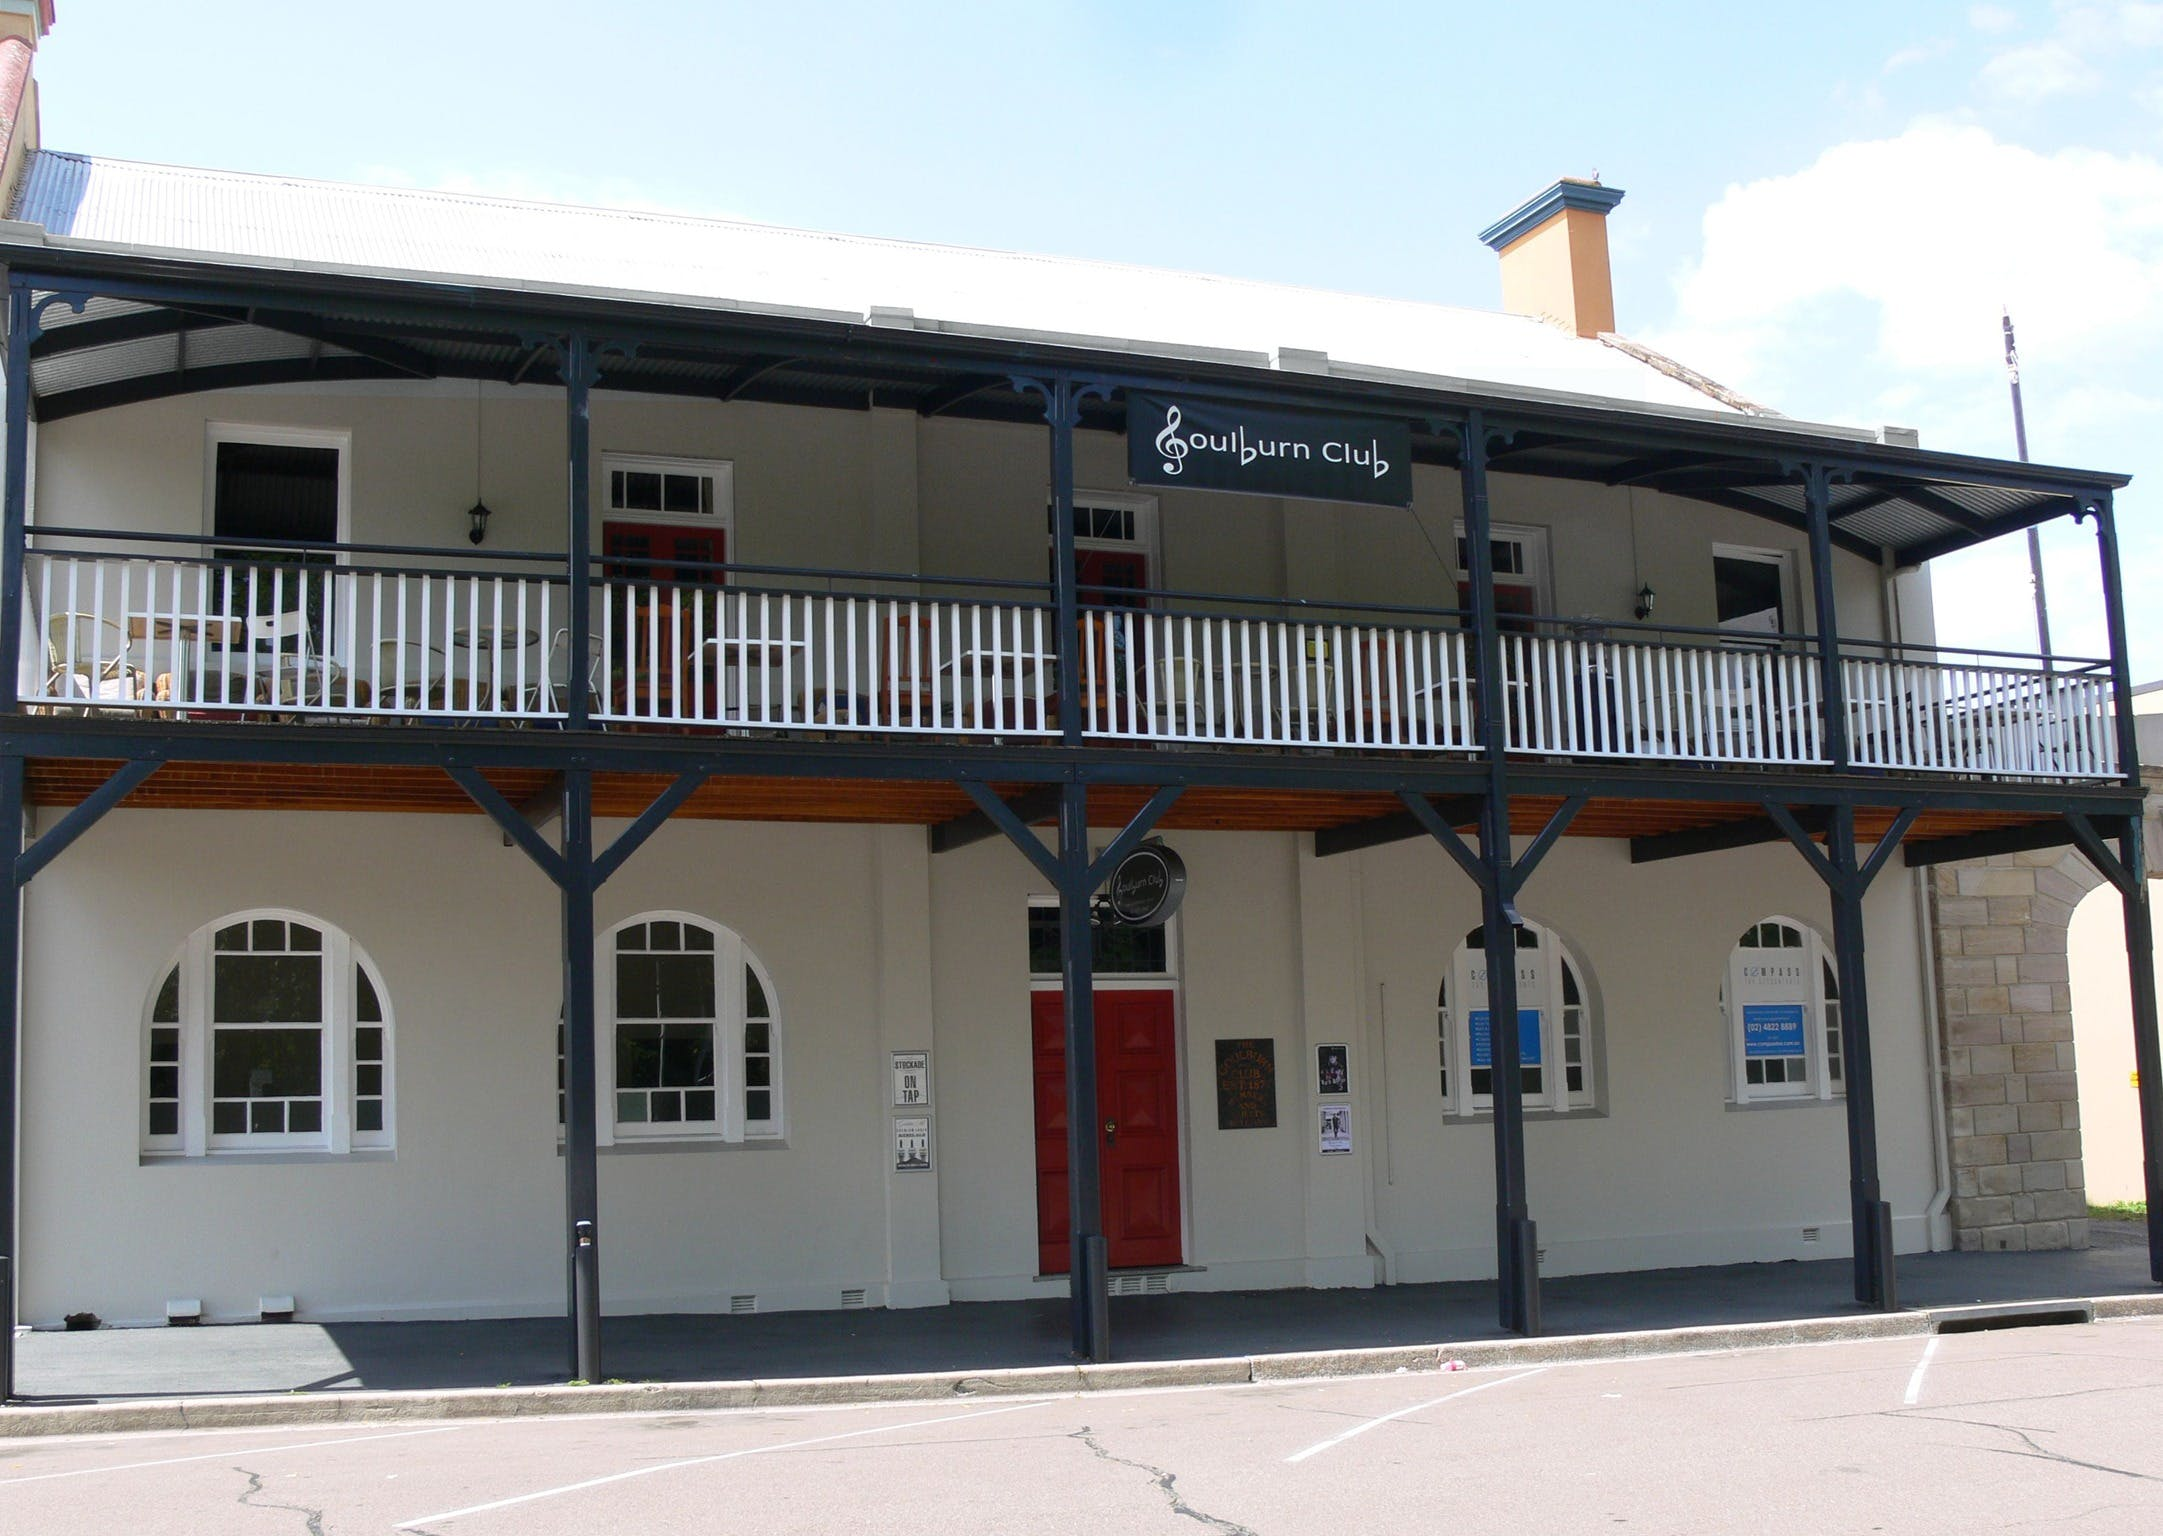 Open Mic Night at the Goulburn Club - Tourism Brisbane